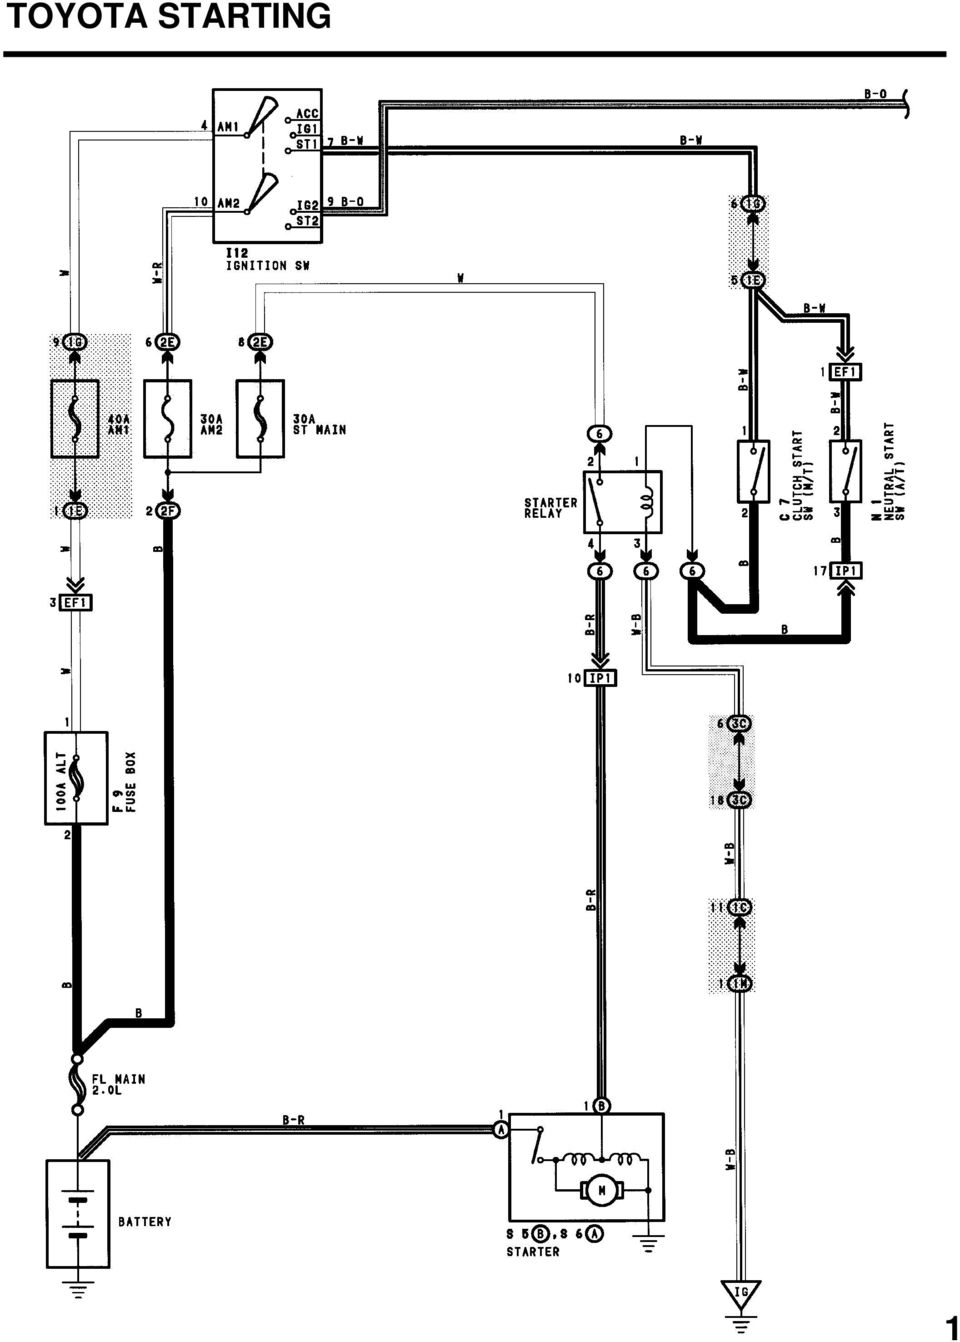 Practice Electrical Wiring Diagrams Pdf Toyota Lucida Diagram 5 Starting 1